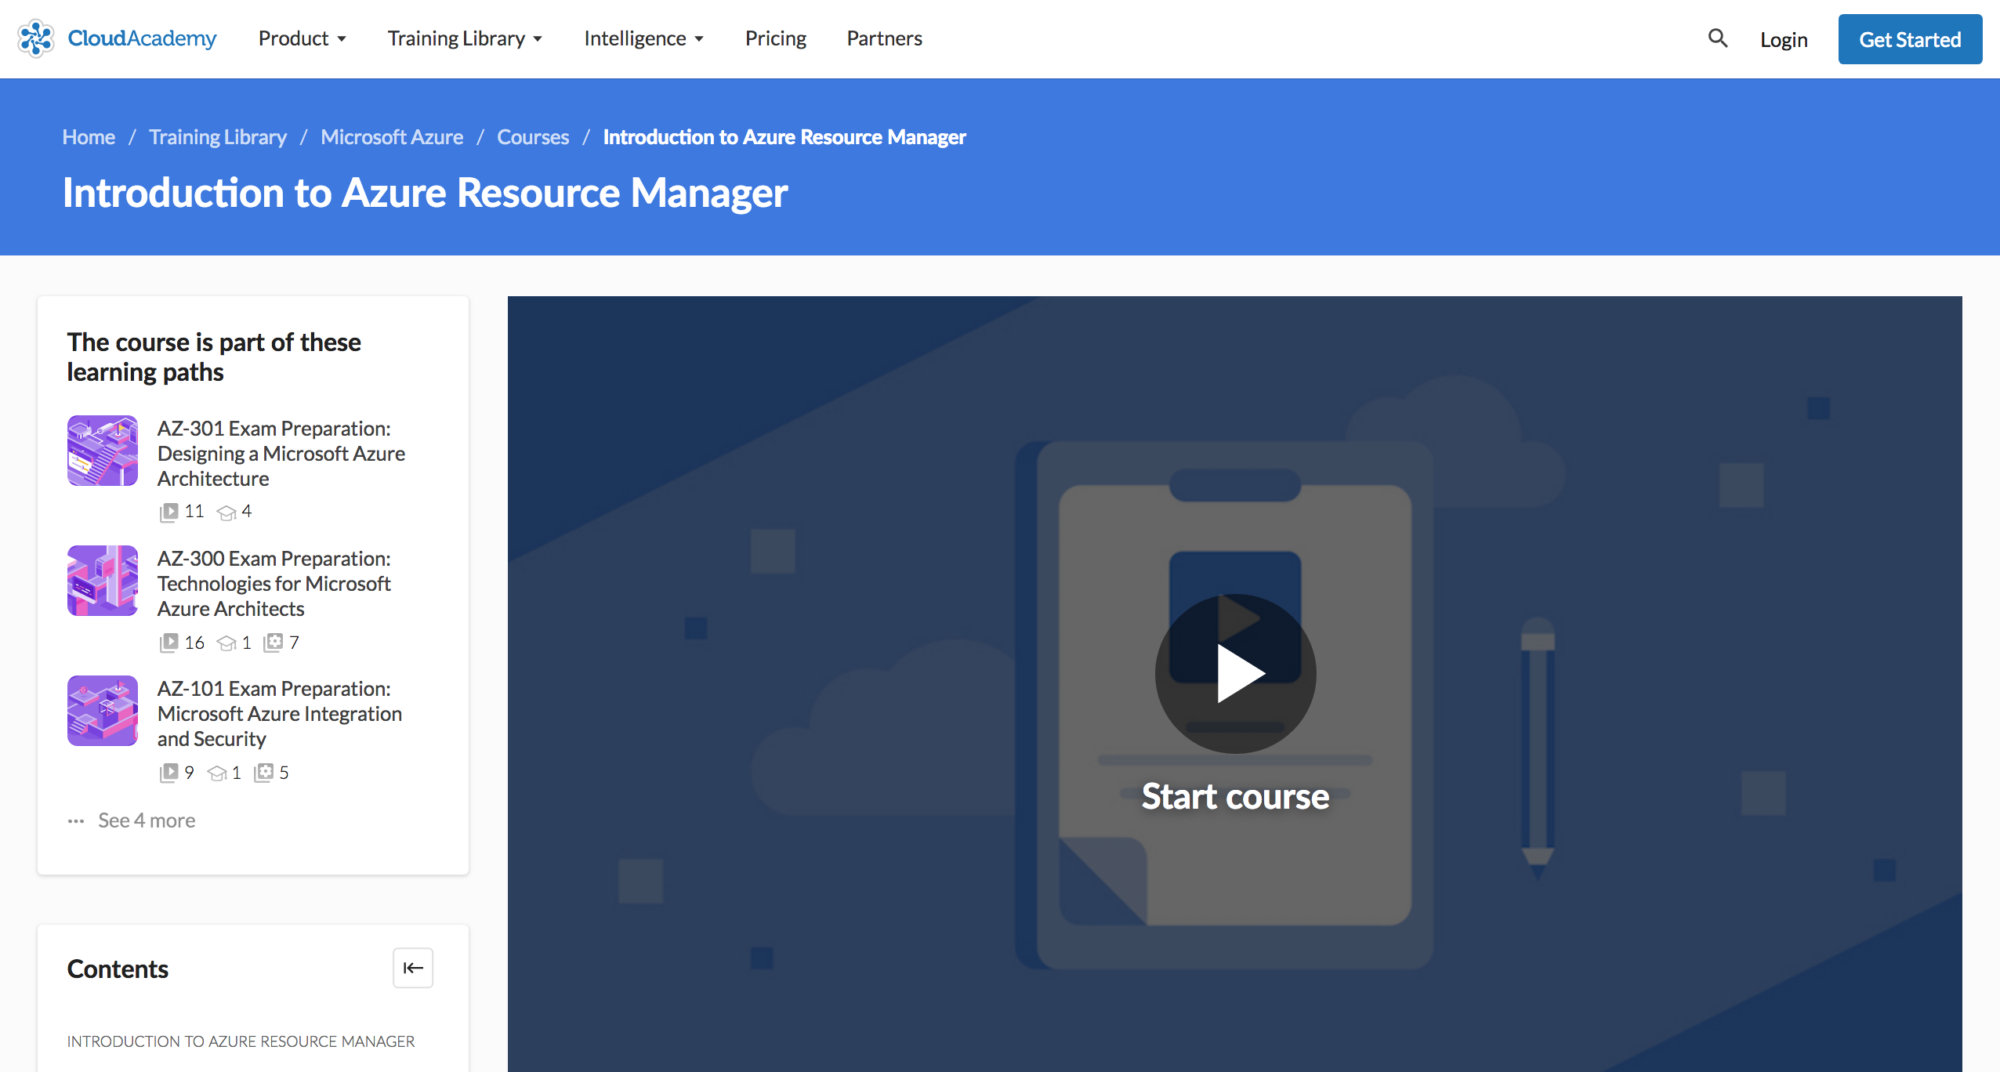 Introduction to Microsoft Azure Resource Manager